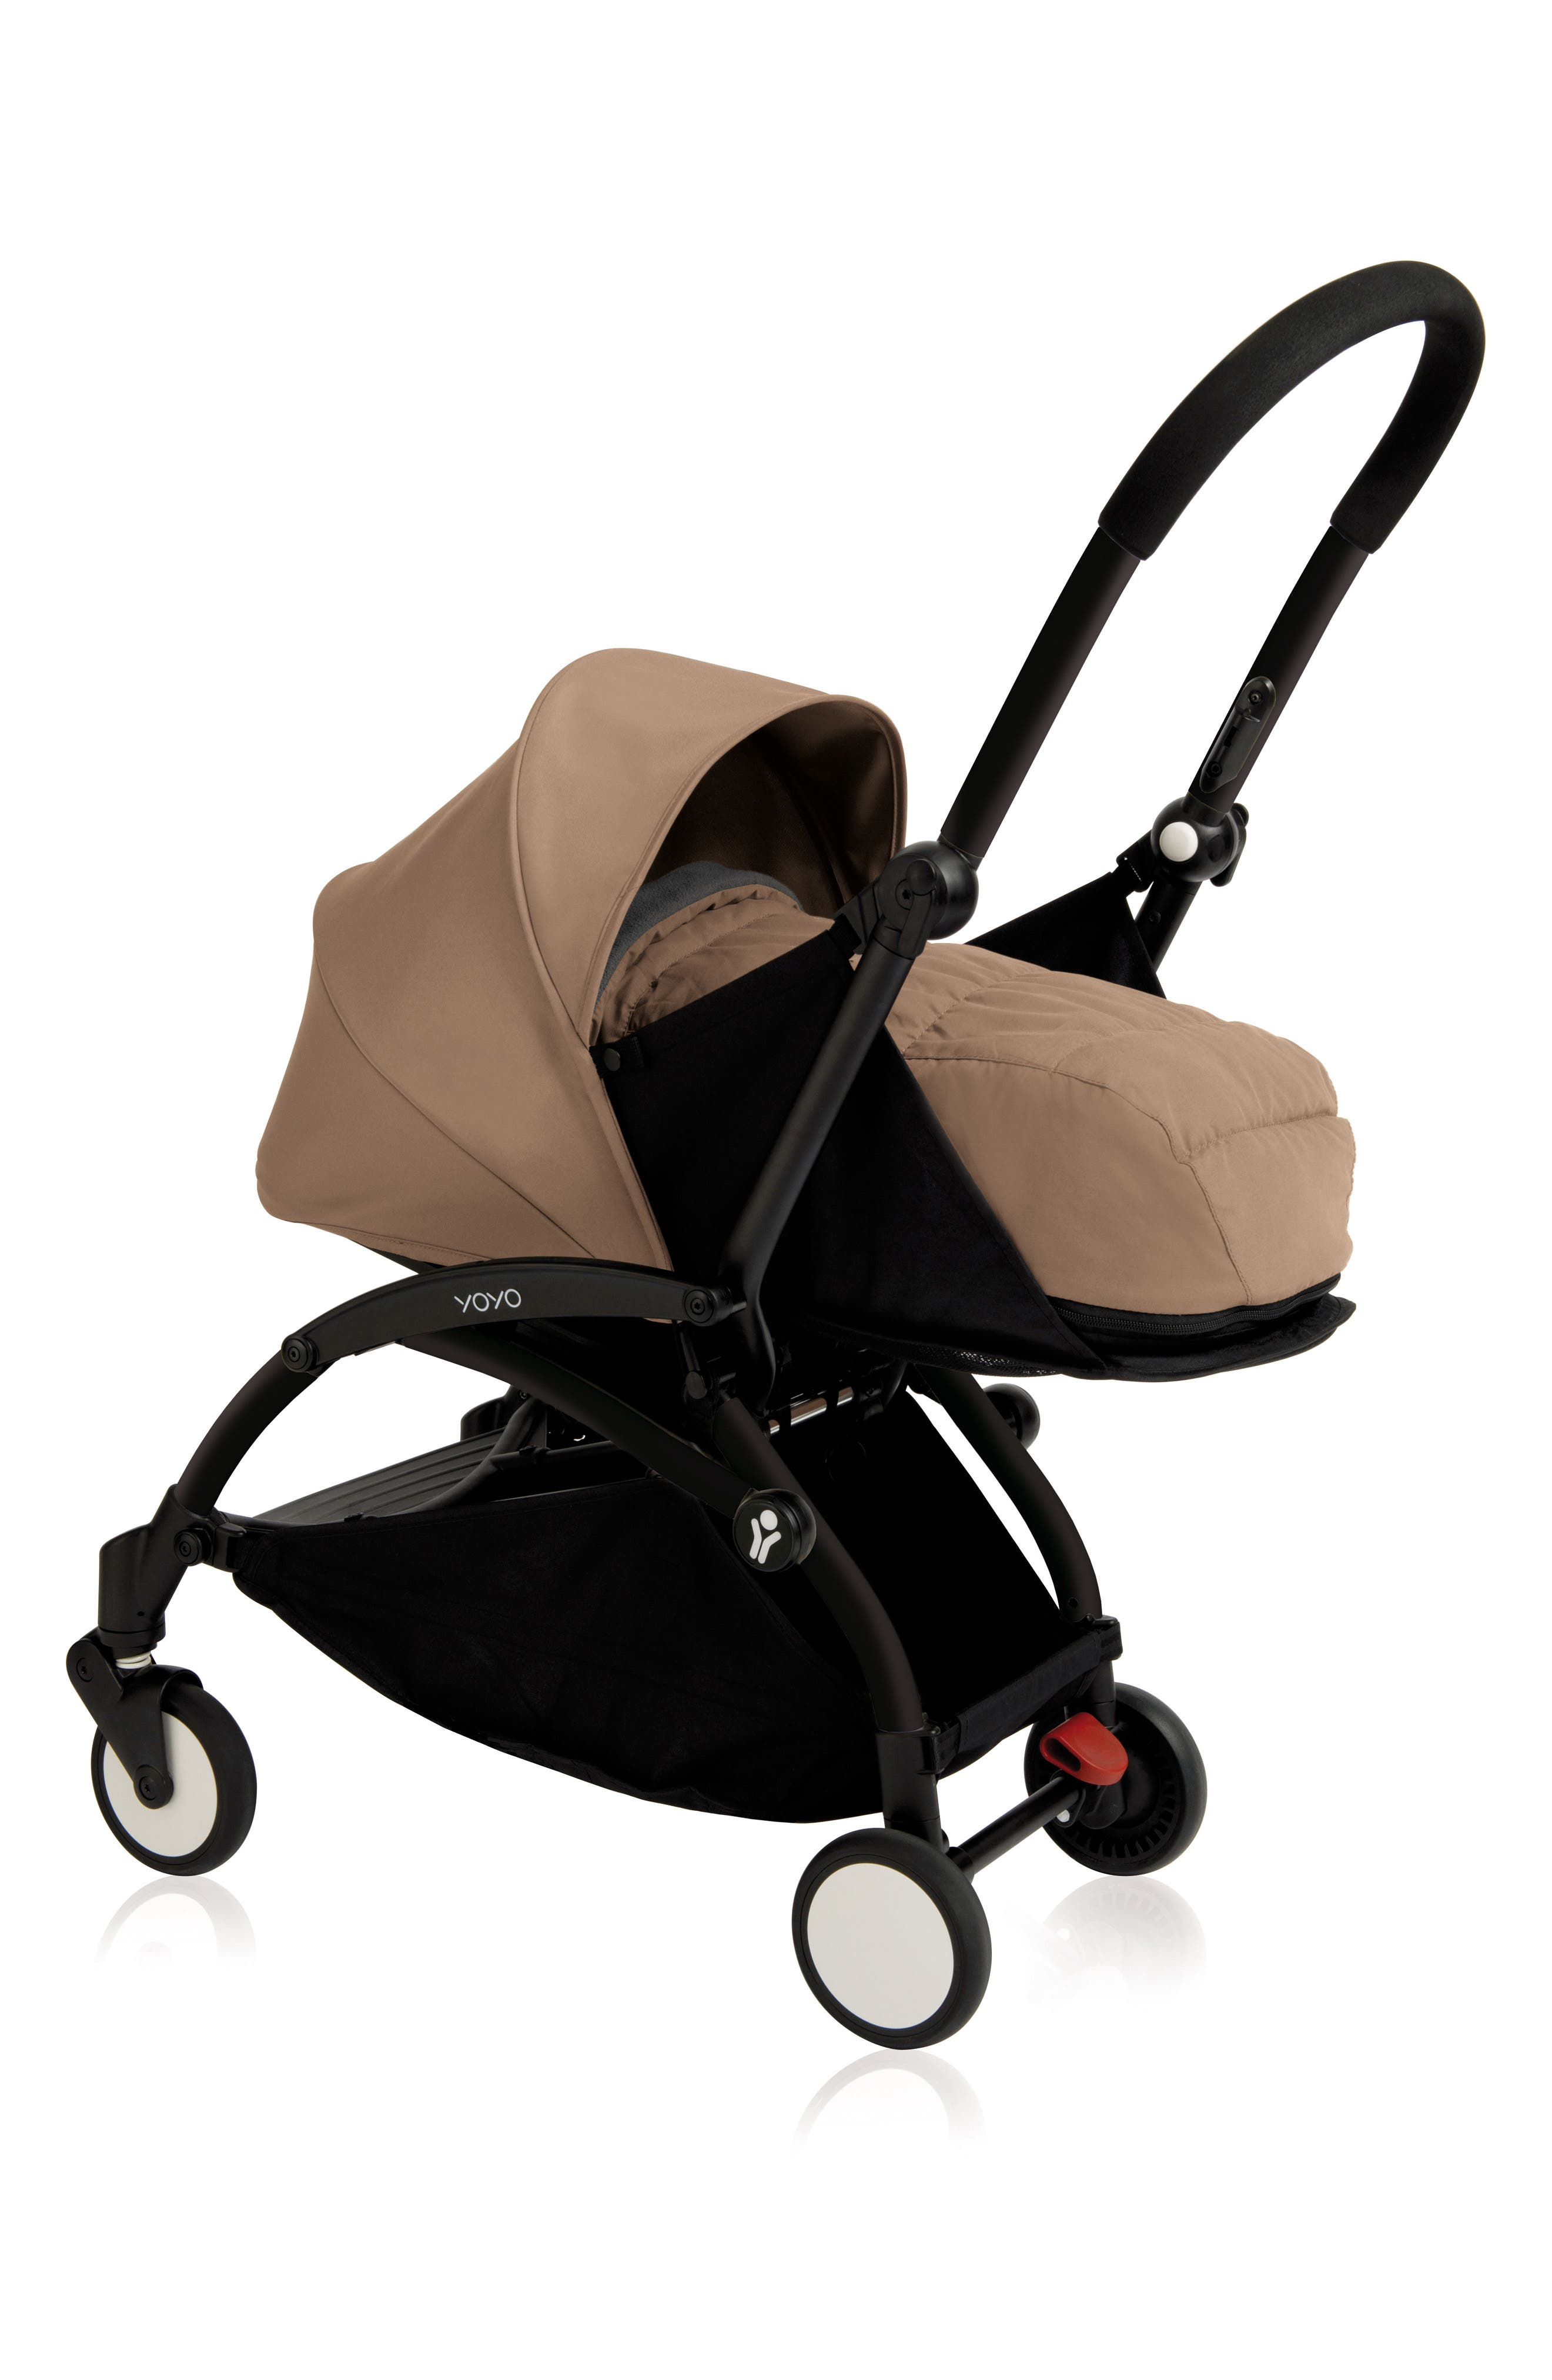 BABYZEN YOYO+ Complete Stroller with Newborn Color Pack Fabric Set